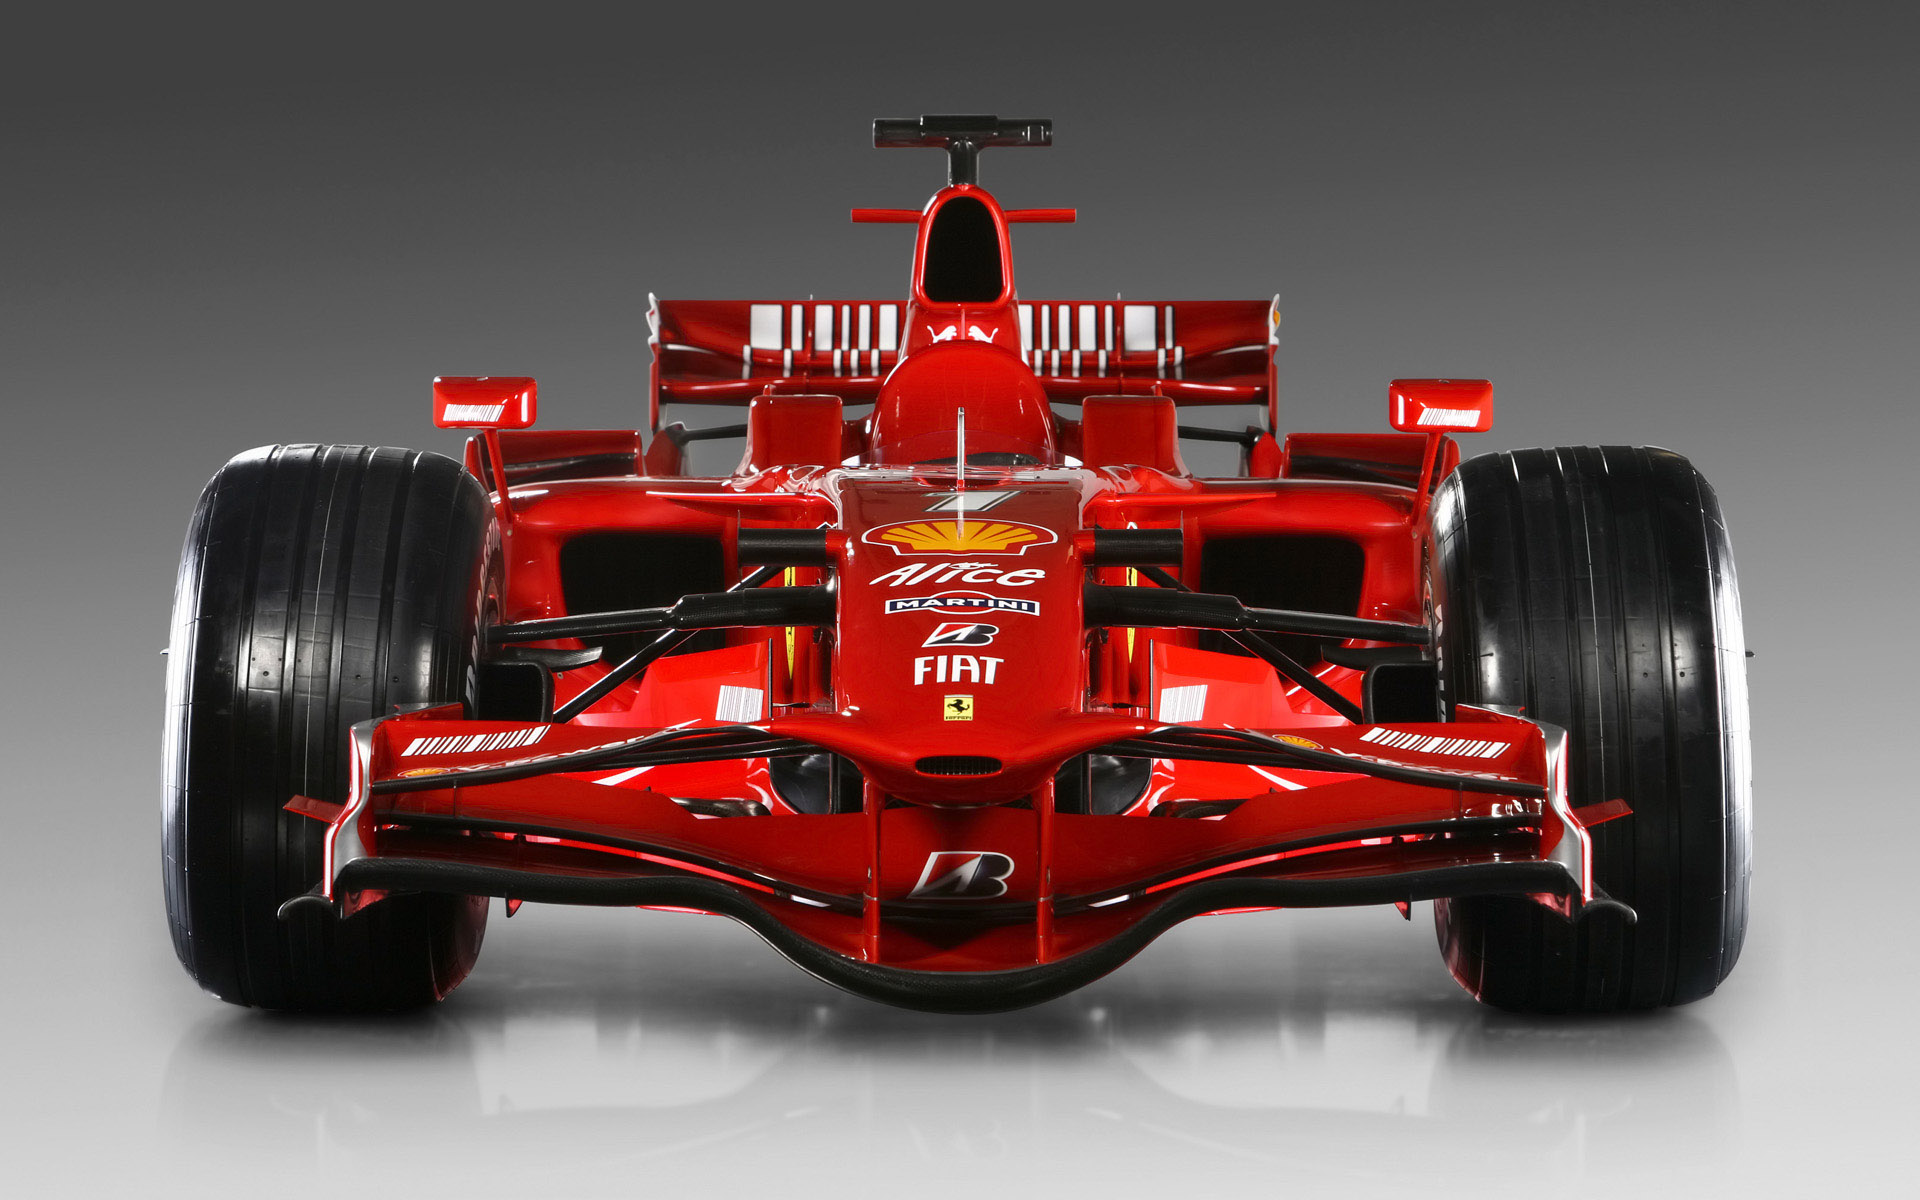 Ferrari F1 World Cars Wallpaper For Background